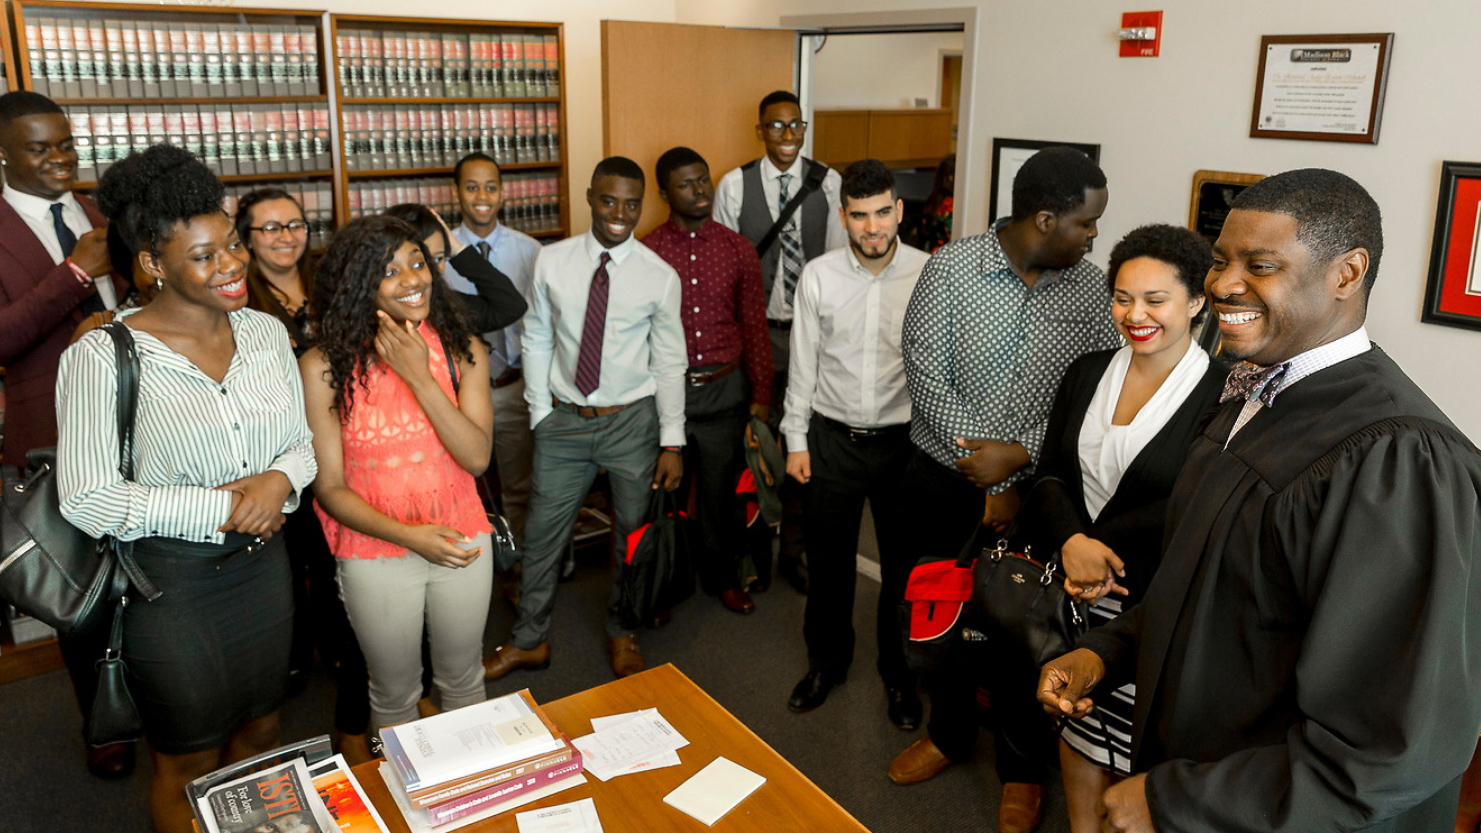 prelaw students with judge